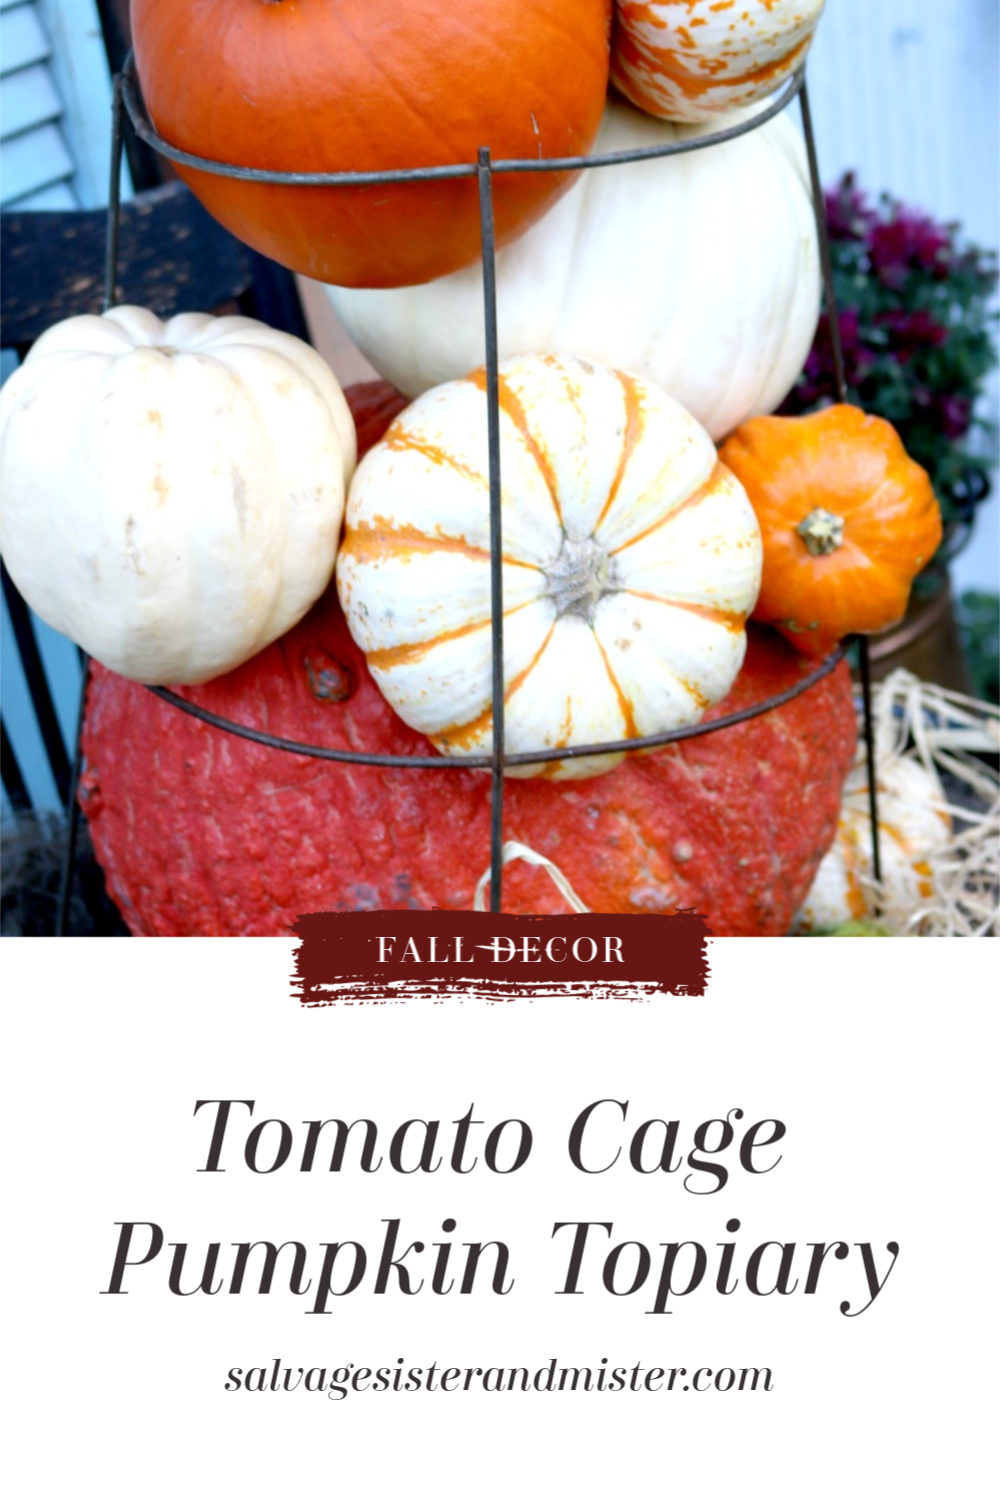 When your summer garden is over what can you do with a tomato cage you ask?  Get ready for fall decorating that's what.  Reuse them to make this tomato cage pumpkin topiary that is perfect for your front porch or backyard decor.  Great for a fall harvest festival and can be stuffed with faux pumpkins for an indoor display too.  Budget friendly and a great upcycle idea to repurpose what would otherwise just sit there until next garden season.  Visit salvagesisterandmister.com for more info.